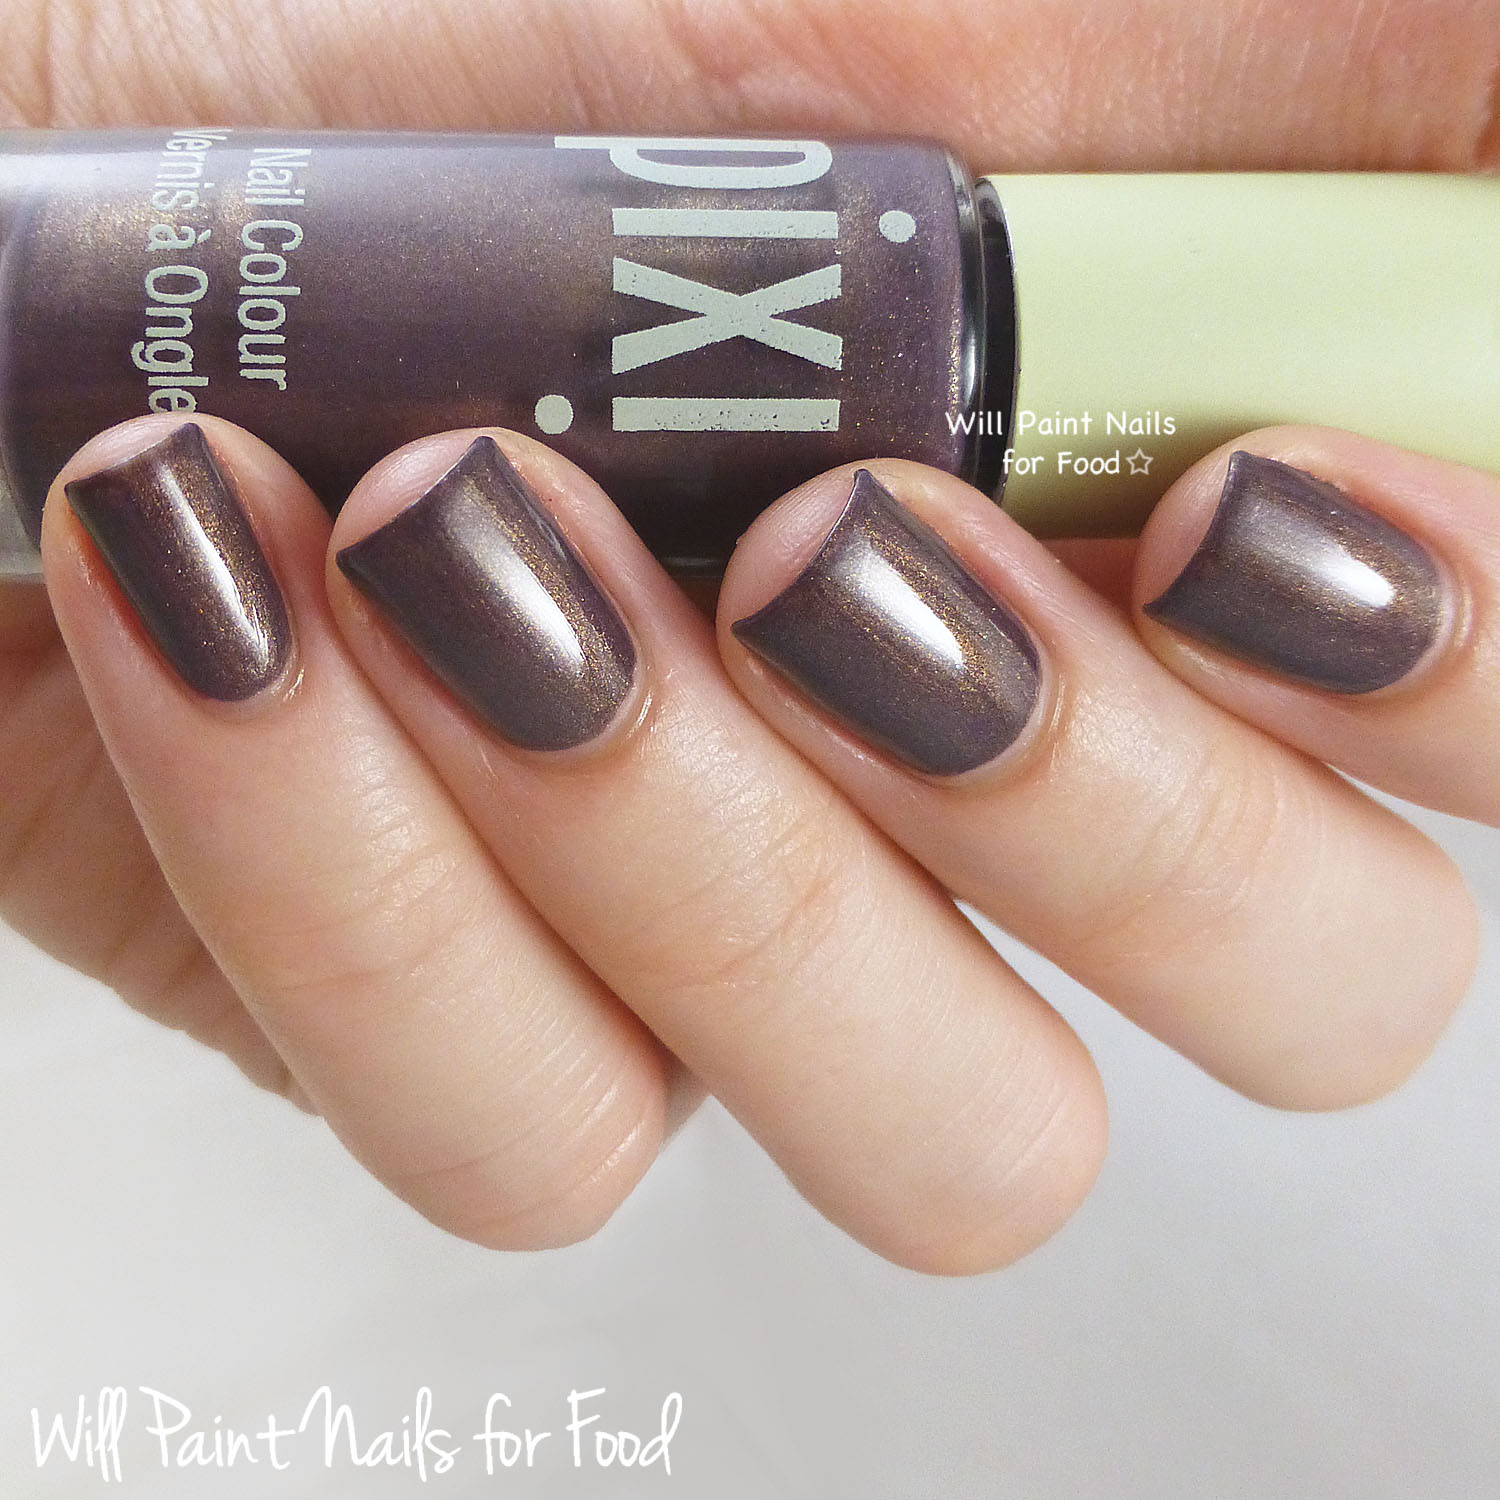 Pixi Nail Colour in Classy Cocoa swatch